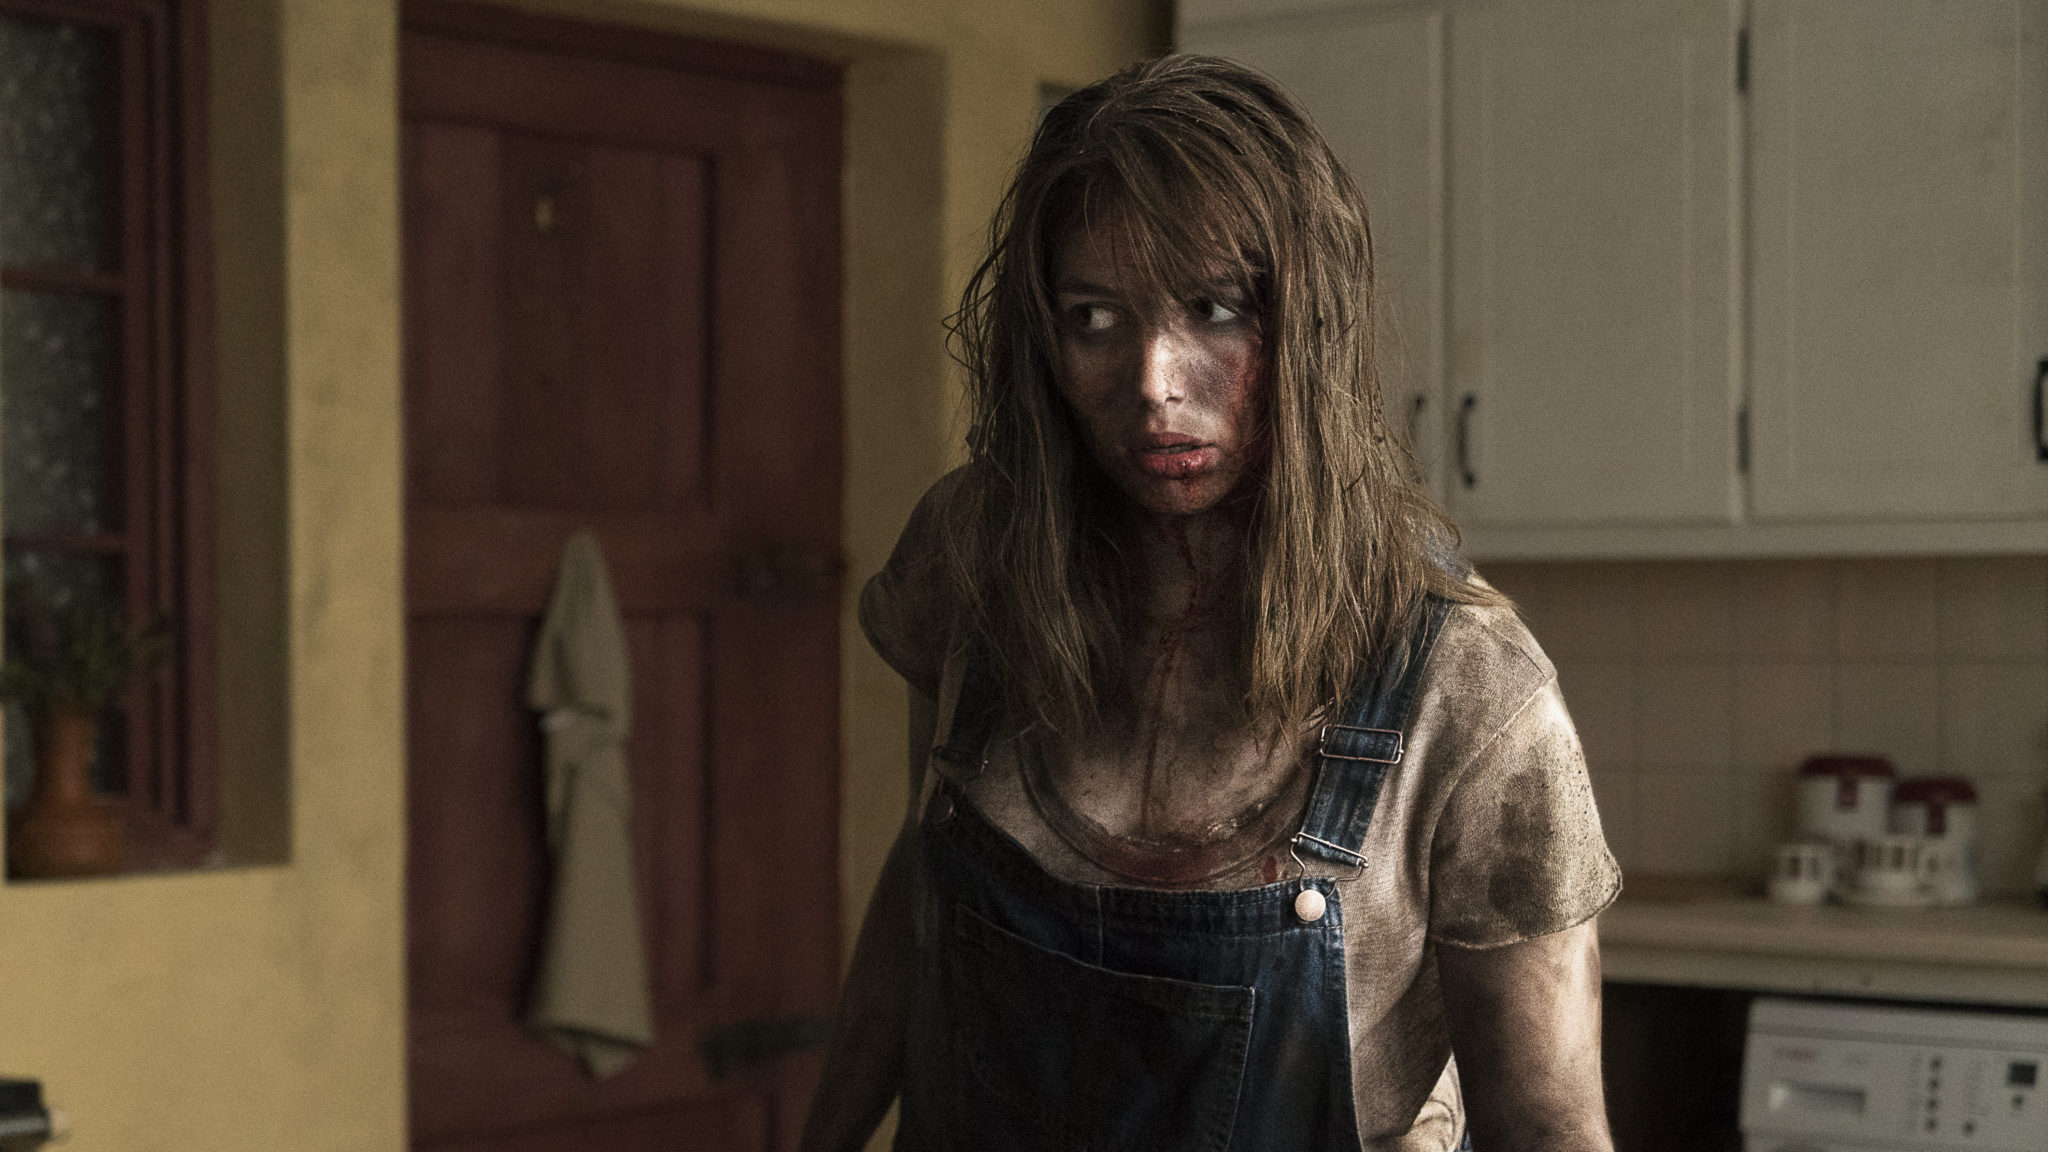 The Hole in the Ground review: A24 joins the Irish horror streak